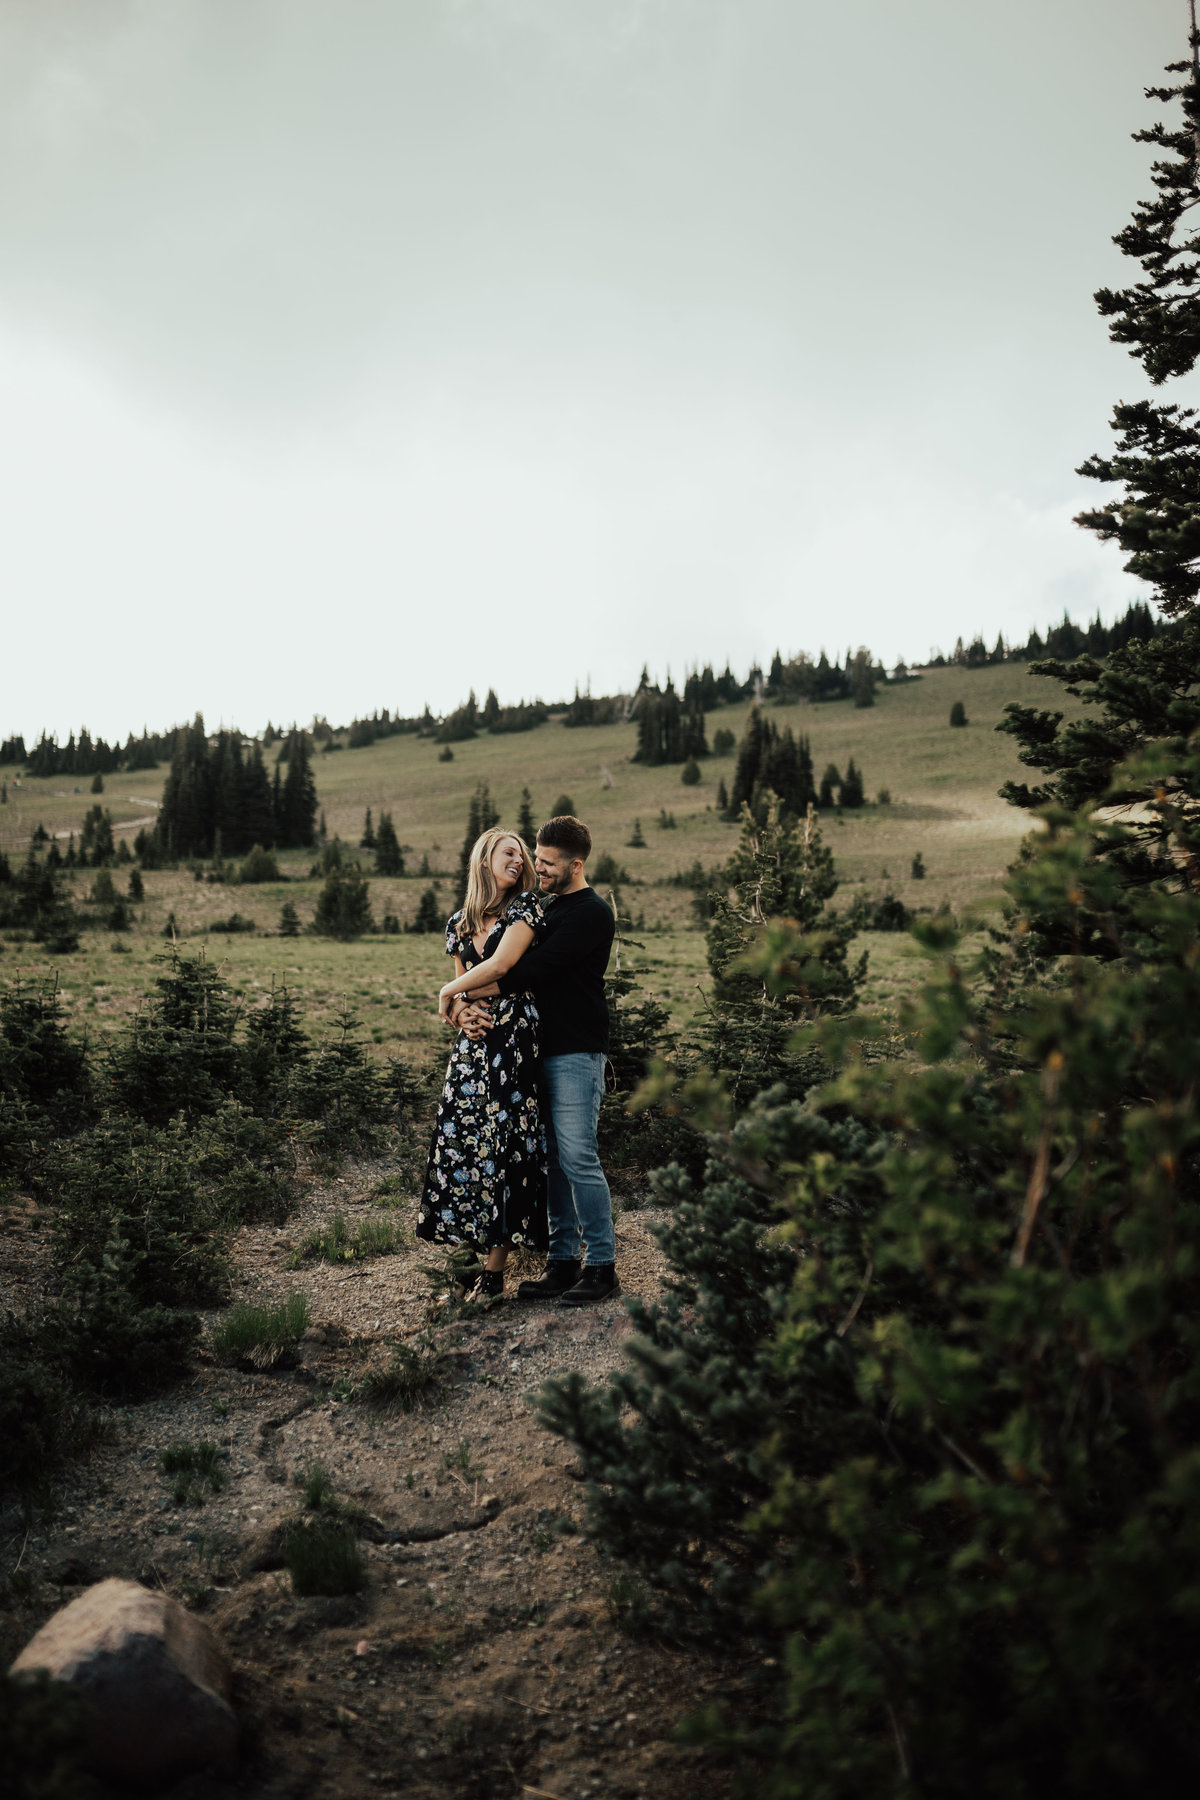 Marnie_Cornell_Photography_Engagement_Mount_Rainier_RK-43